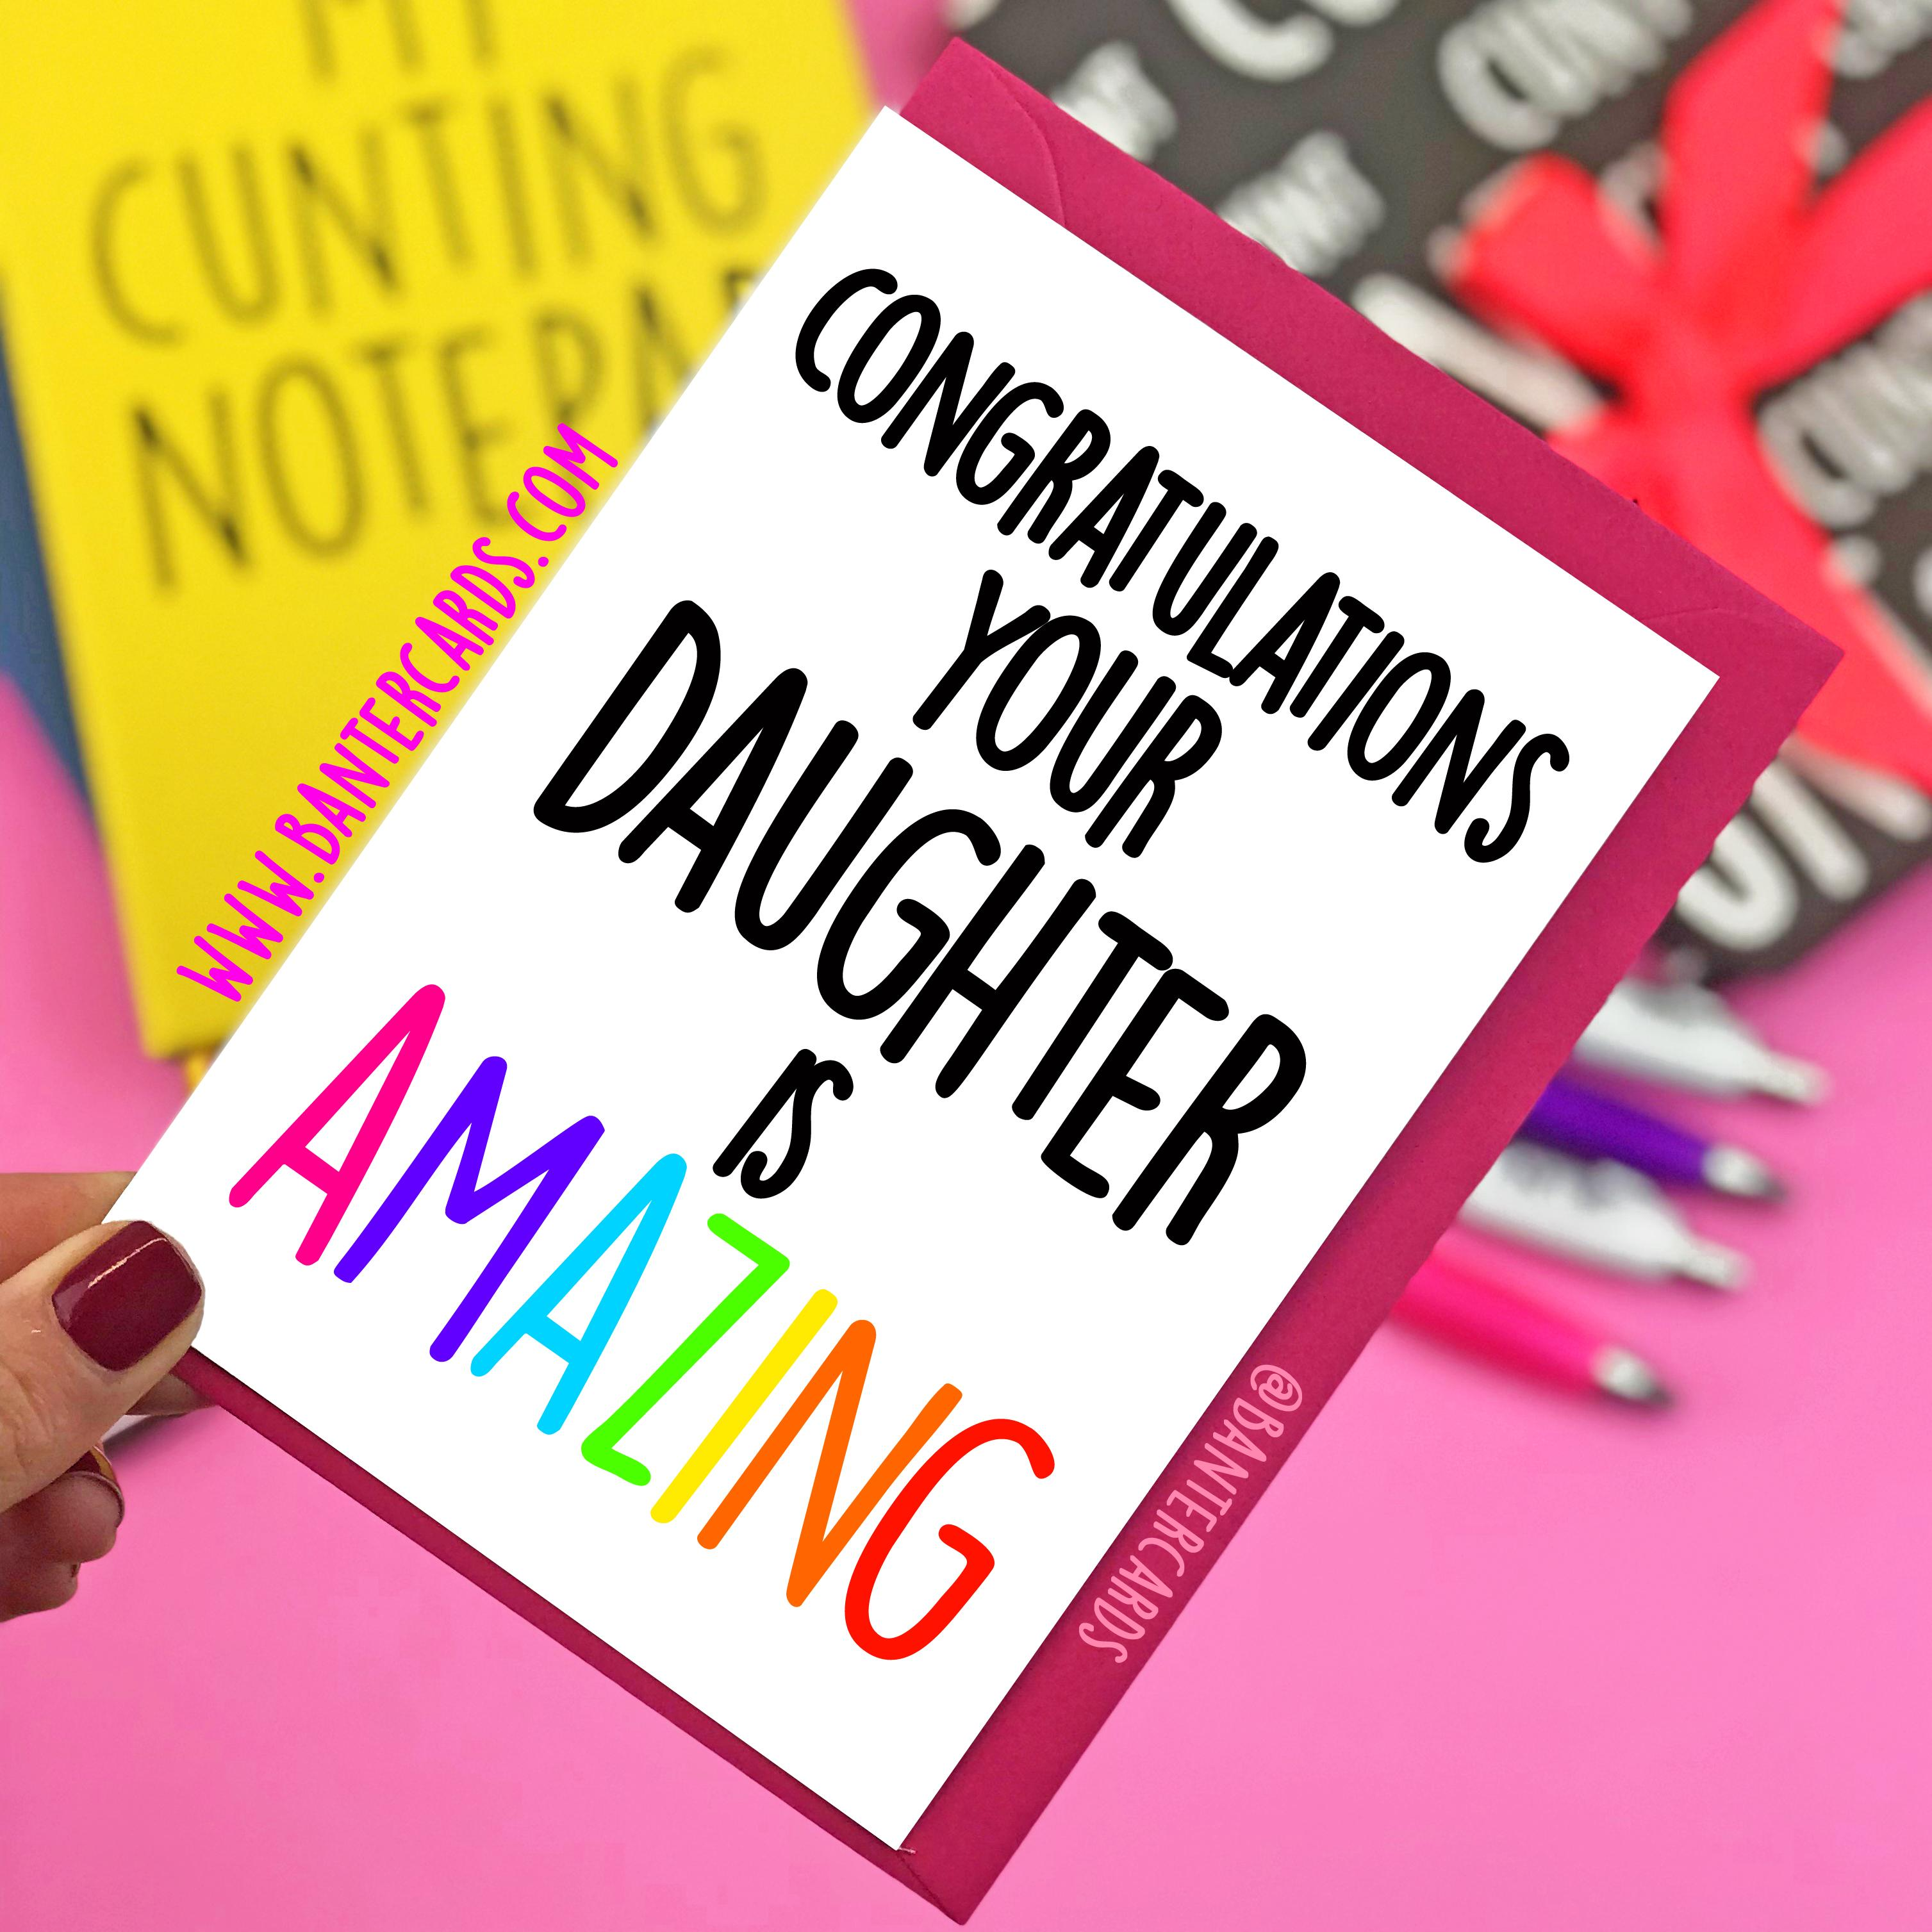 CONGRATULATIONS YOUR DAUGHTER IS AMAZING